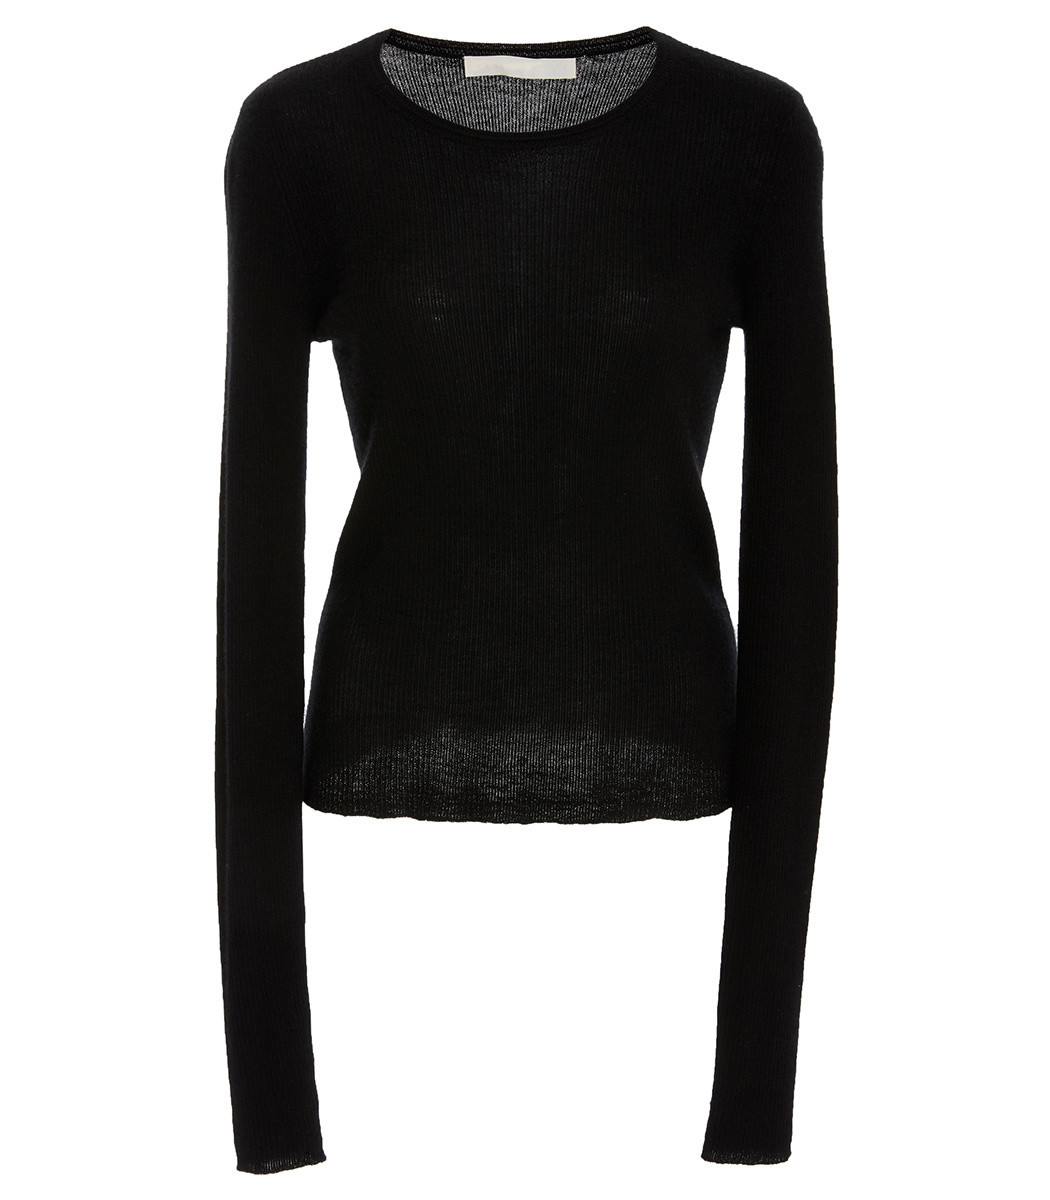 MARISA WITKIN Fine Gauge Cashmere Sweater with Removable Turtleneck